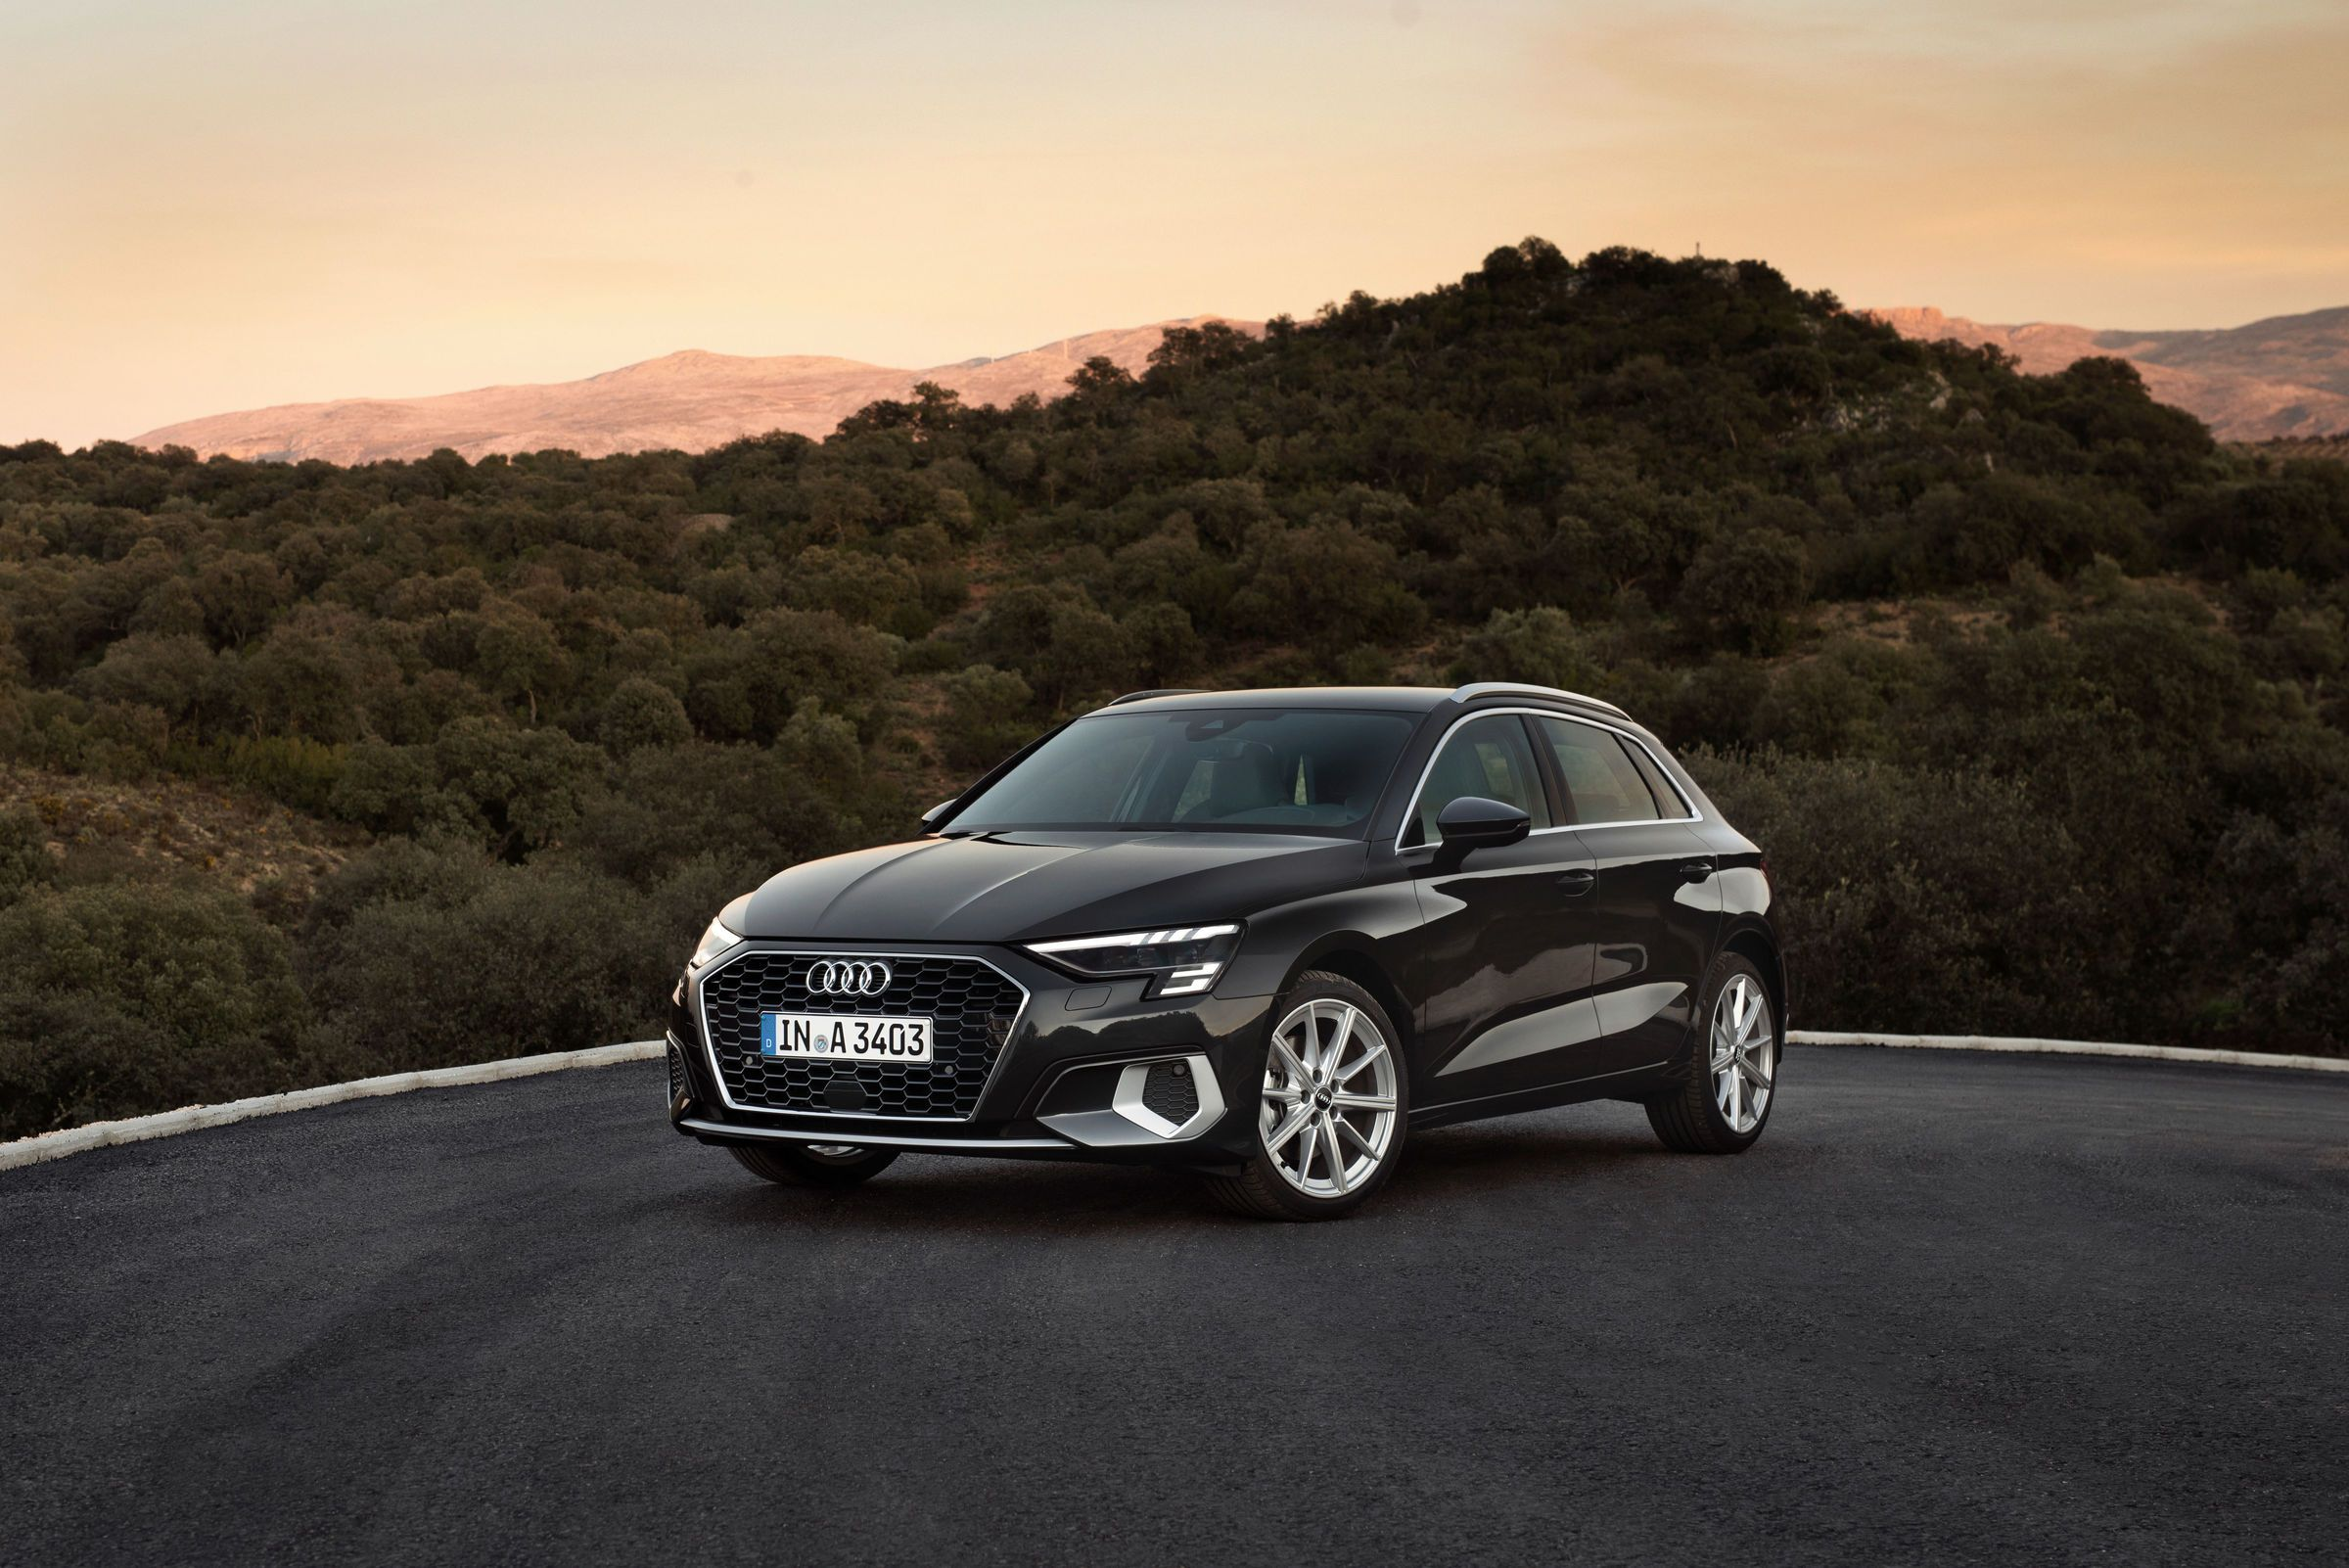 New Audi A3 Sportback Market Launch and SpecialEdition